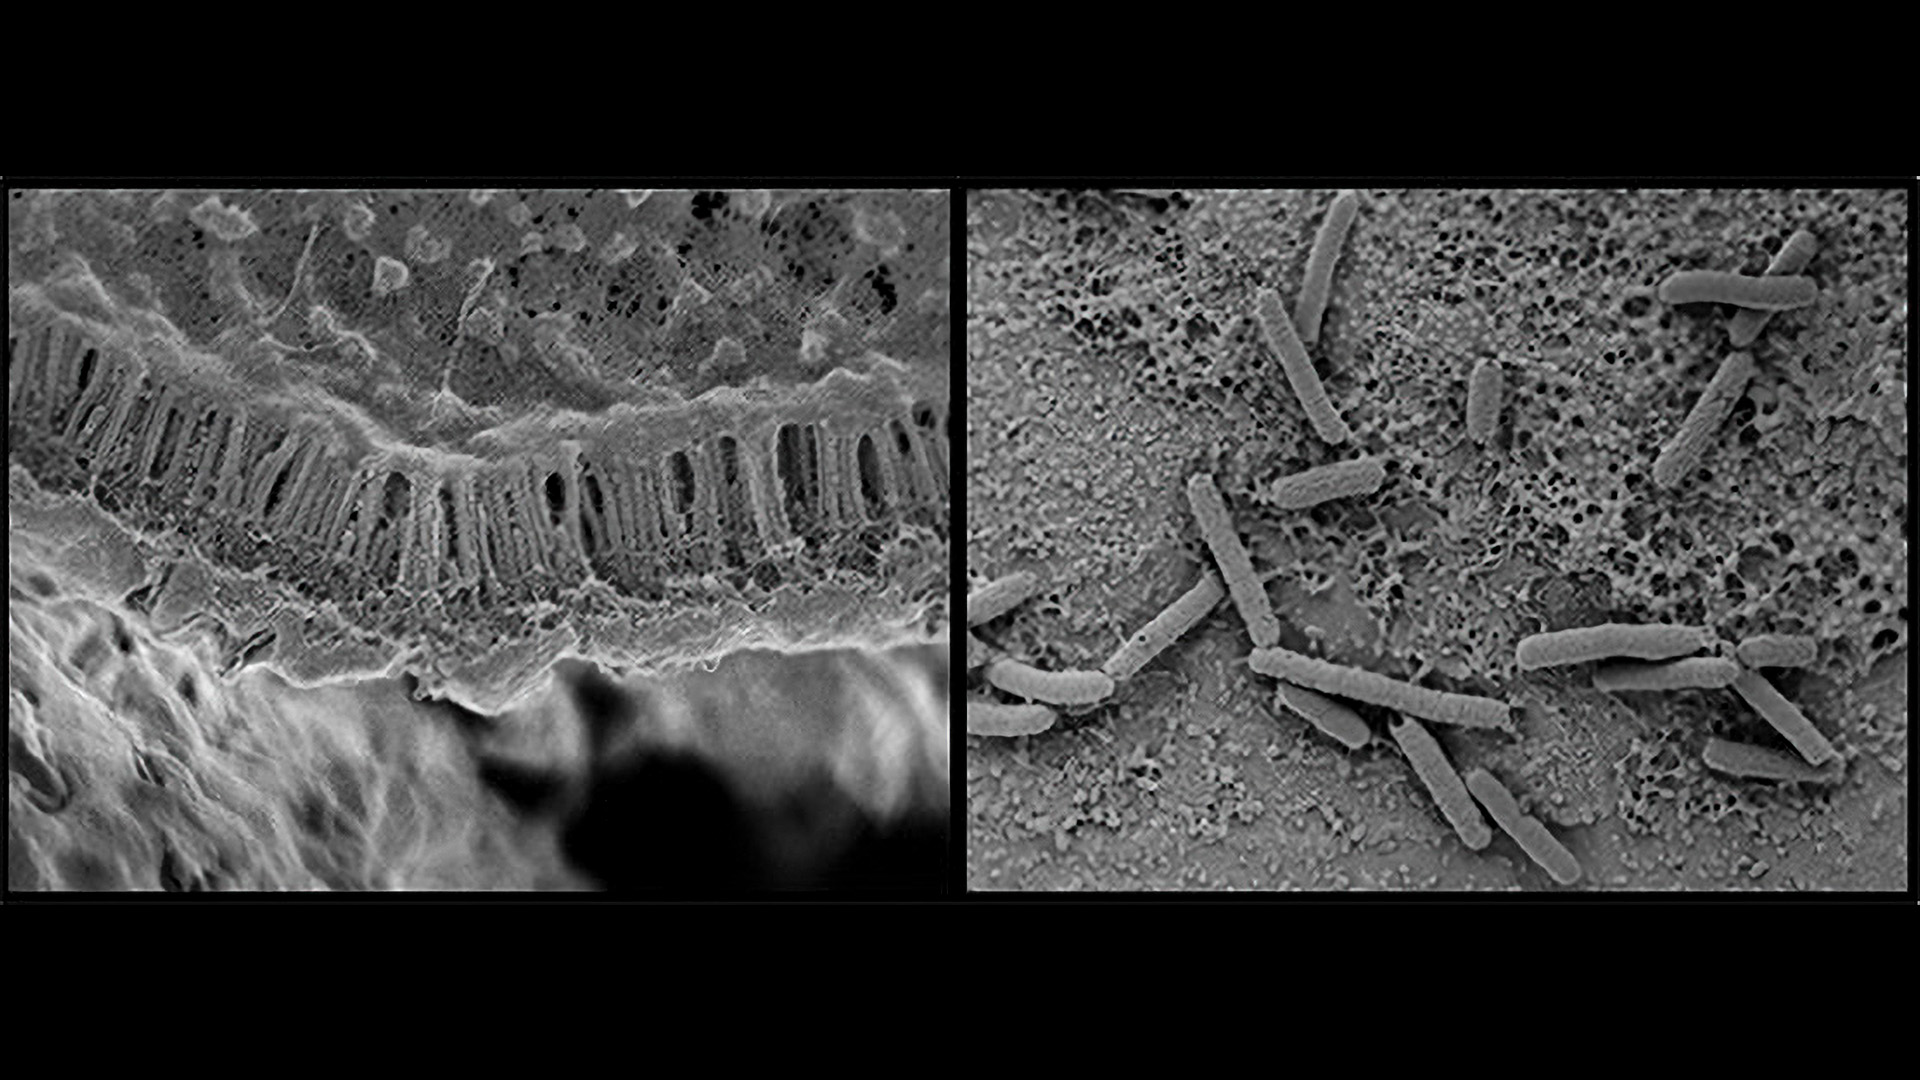 Microbiome Bacteria Adapt To Humans Through Transmission: Study